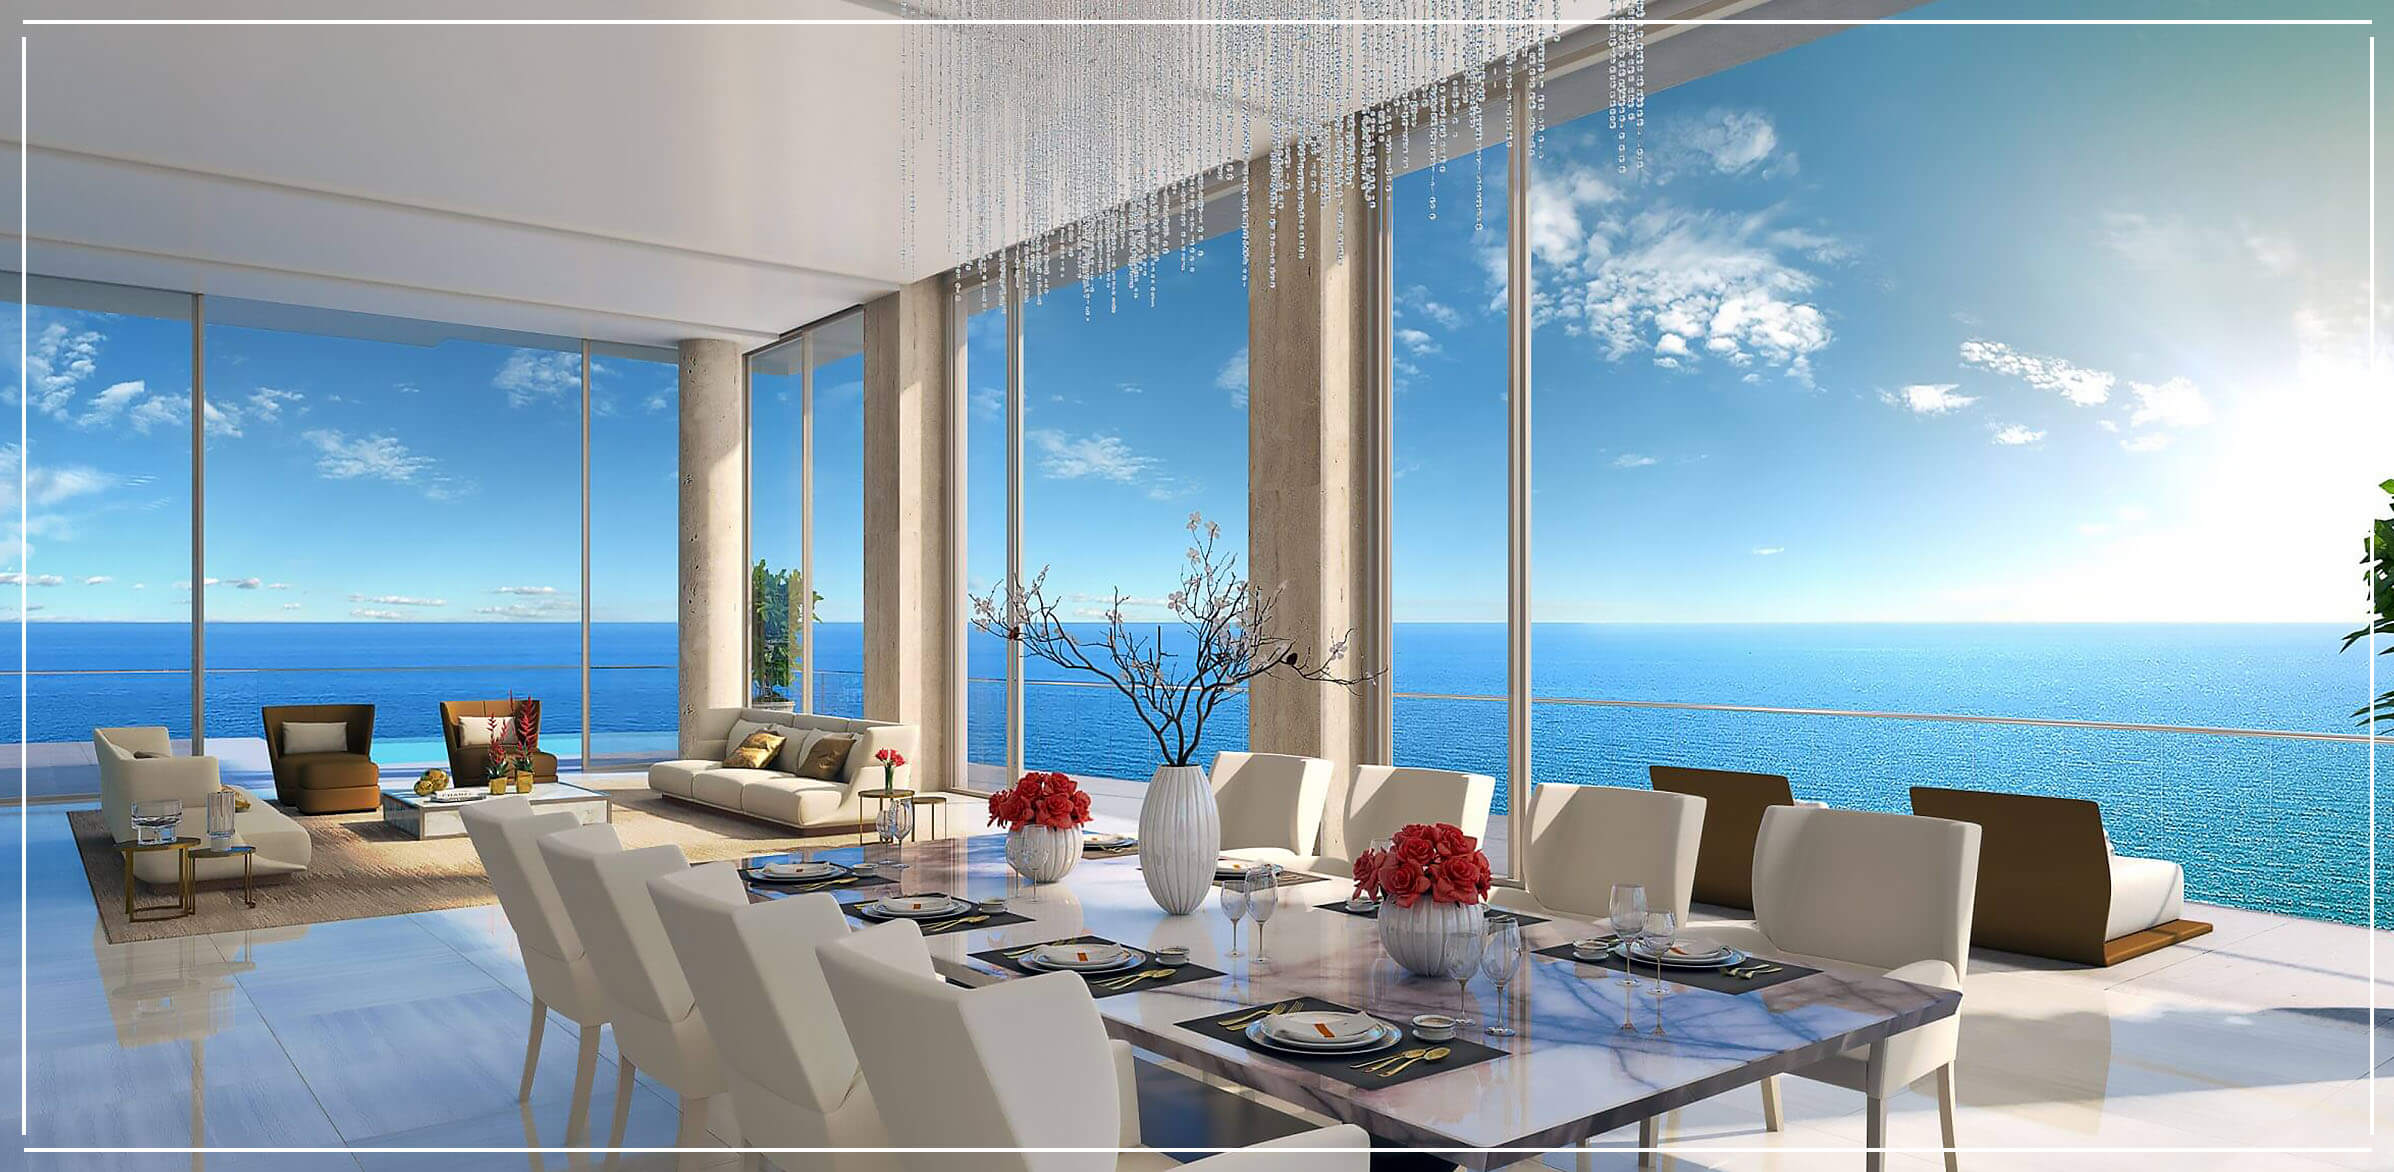 The Estates at Acqualina Penthouse for Sale in Sunny Isles Beach